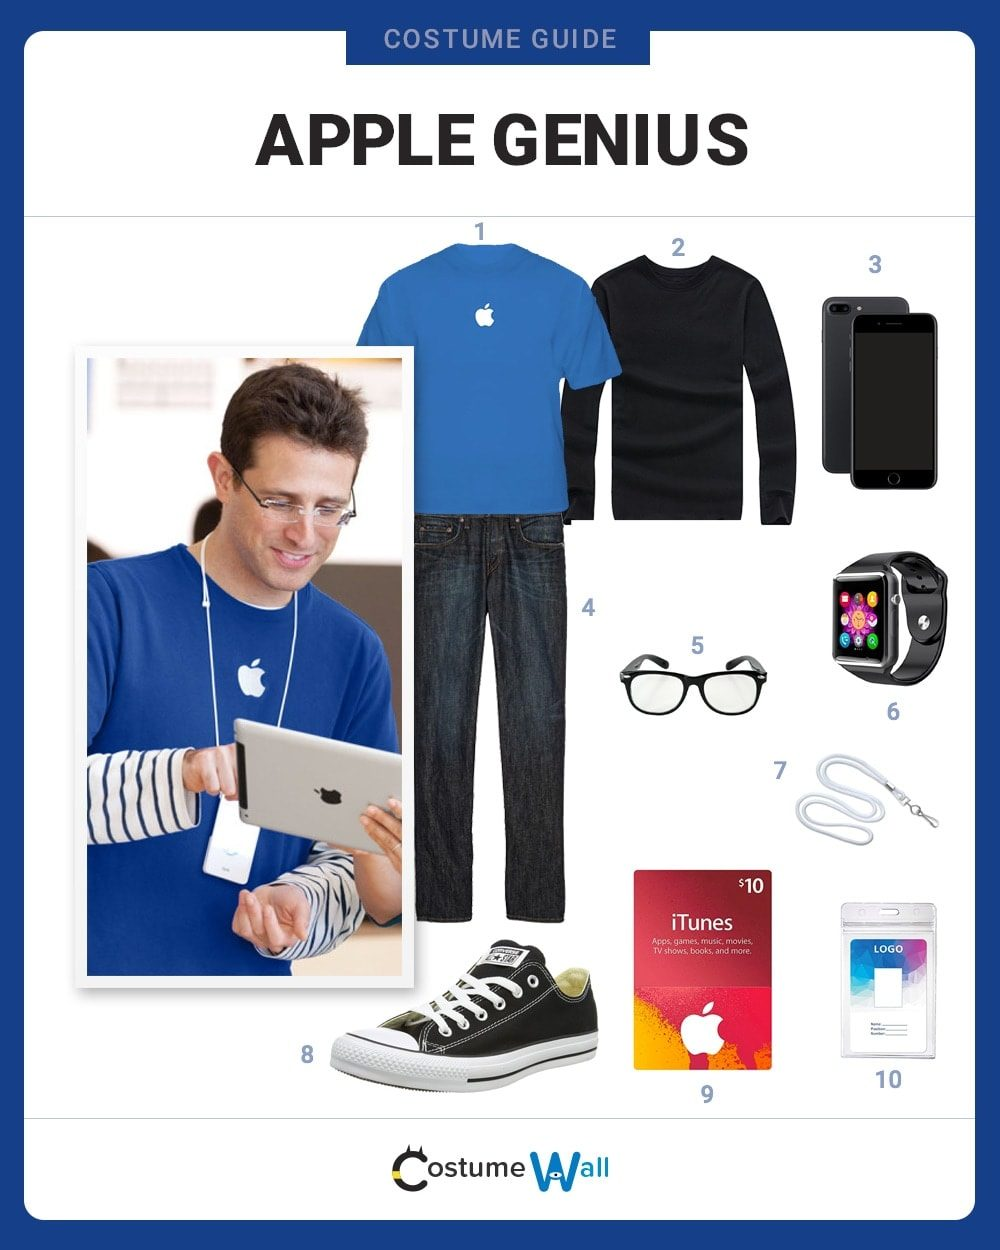 Apple Genius Costume Guide